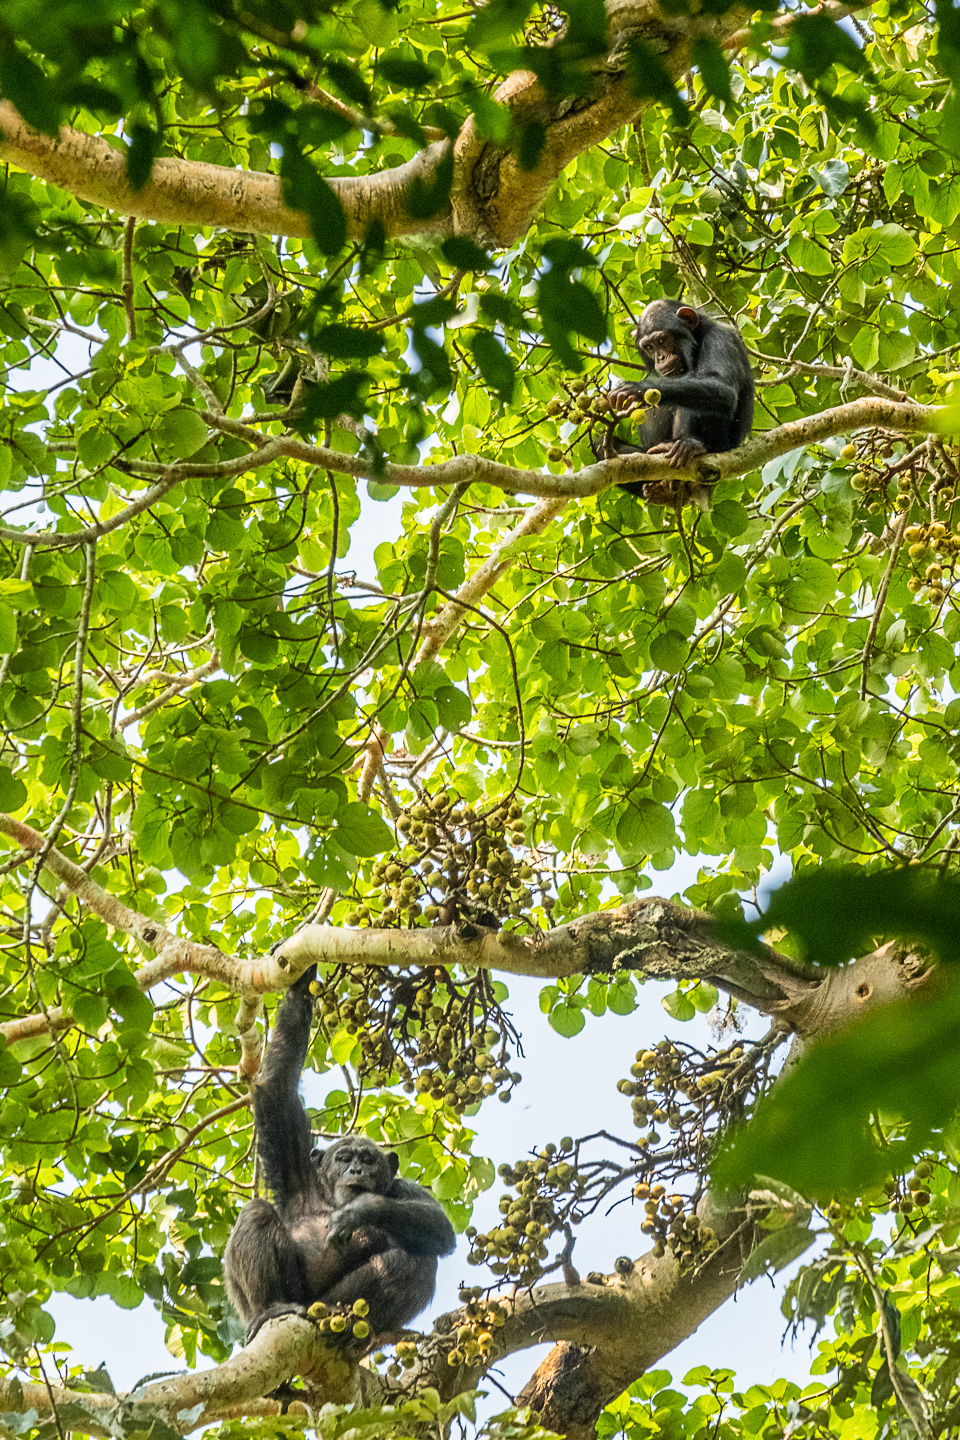 Mom and baby Chimps eating Figs, Kibale National Park, Uganda